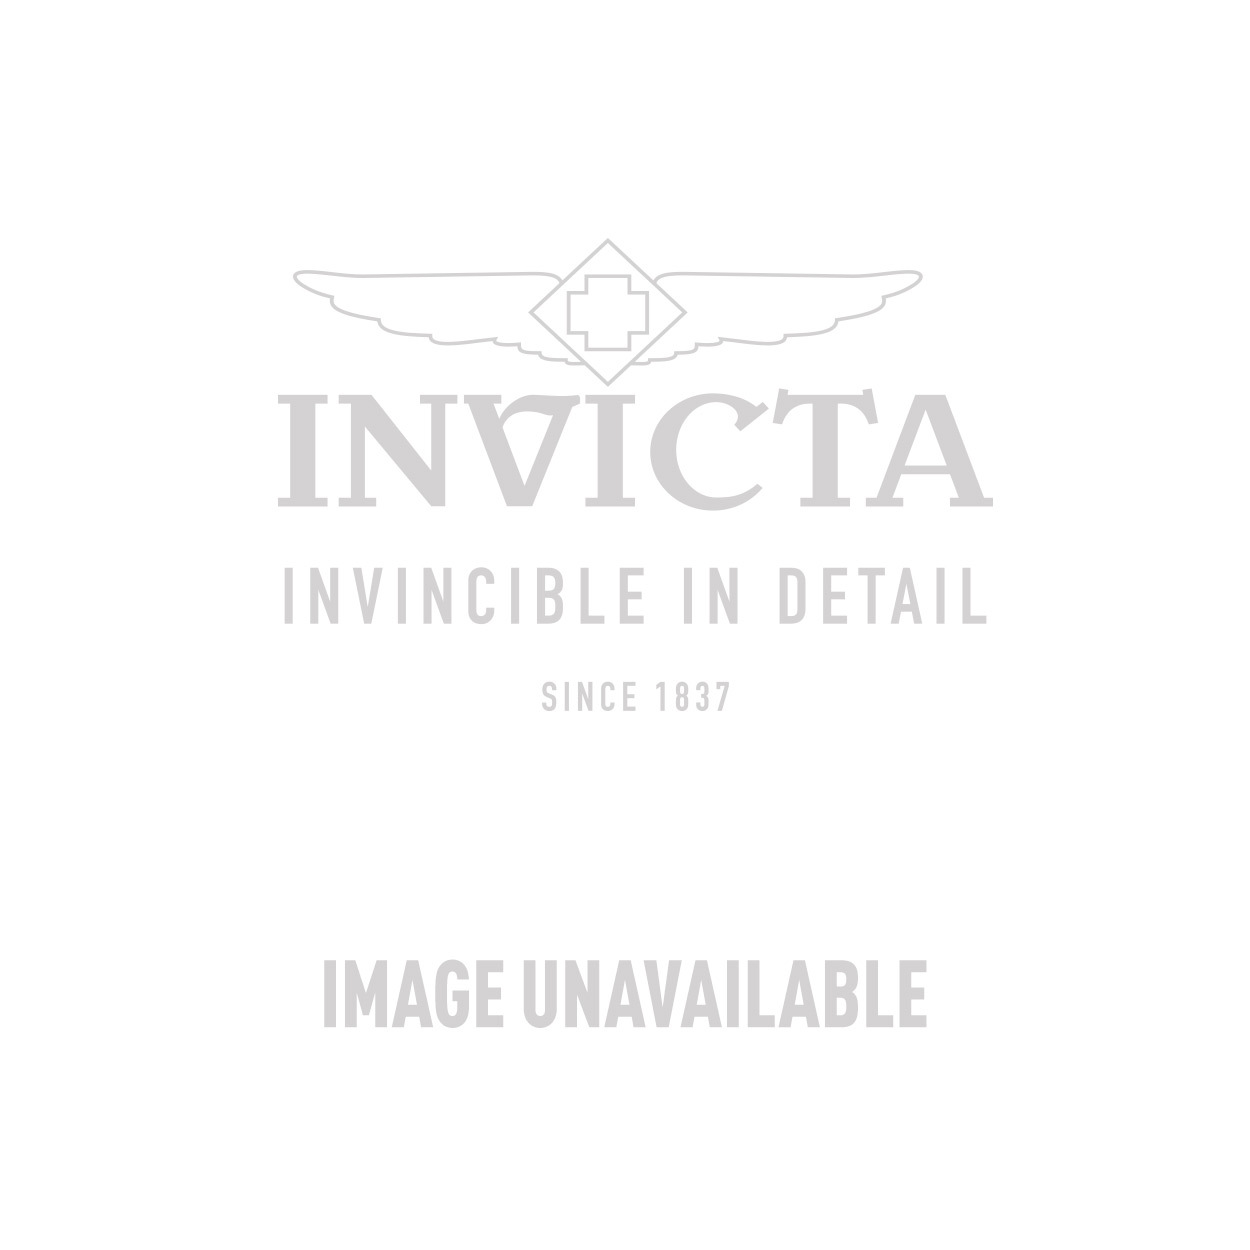 Invicta S1 Rally Automatic Watch - Gold case with Black, Beige tone Silicone band - Model 15863